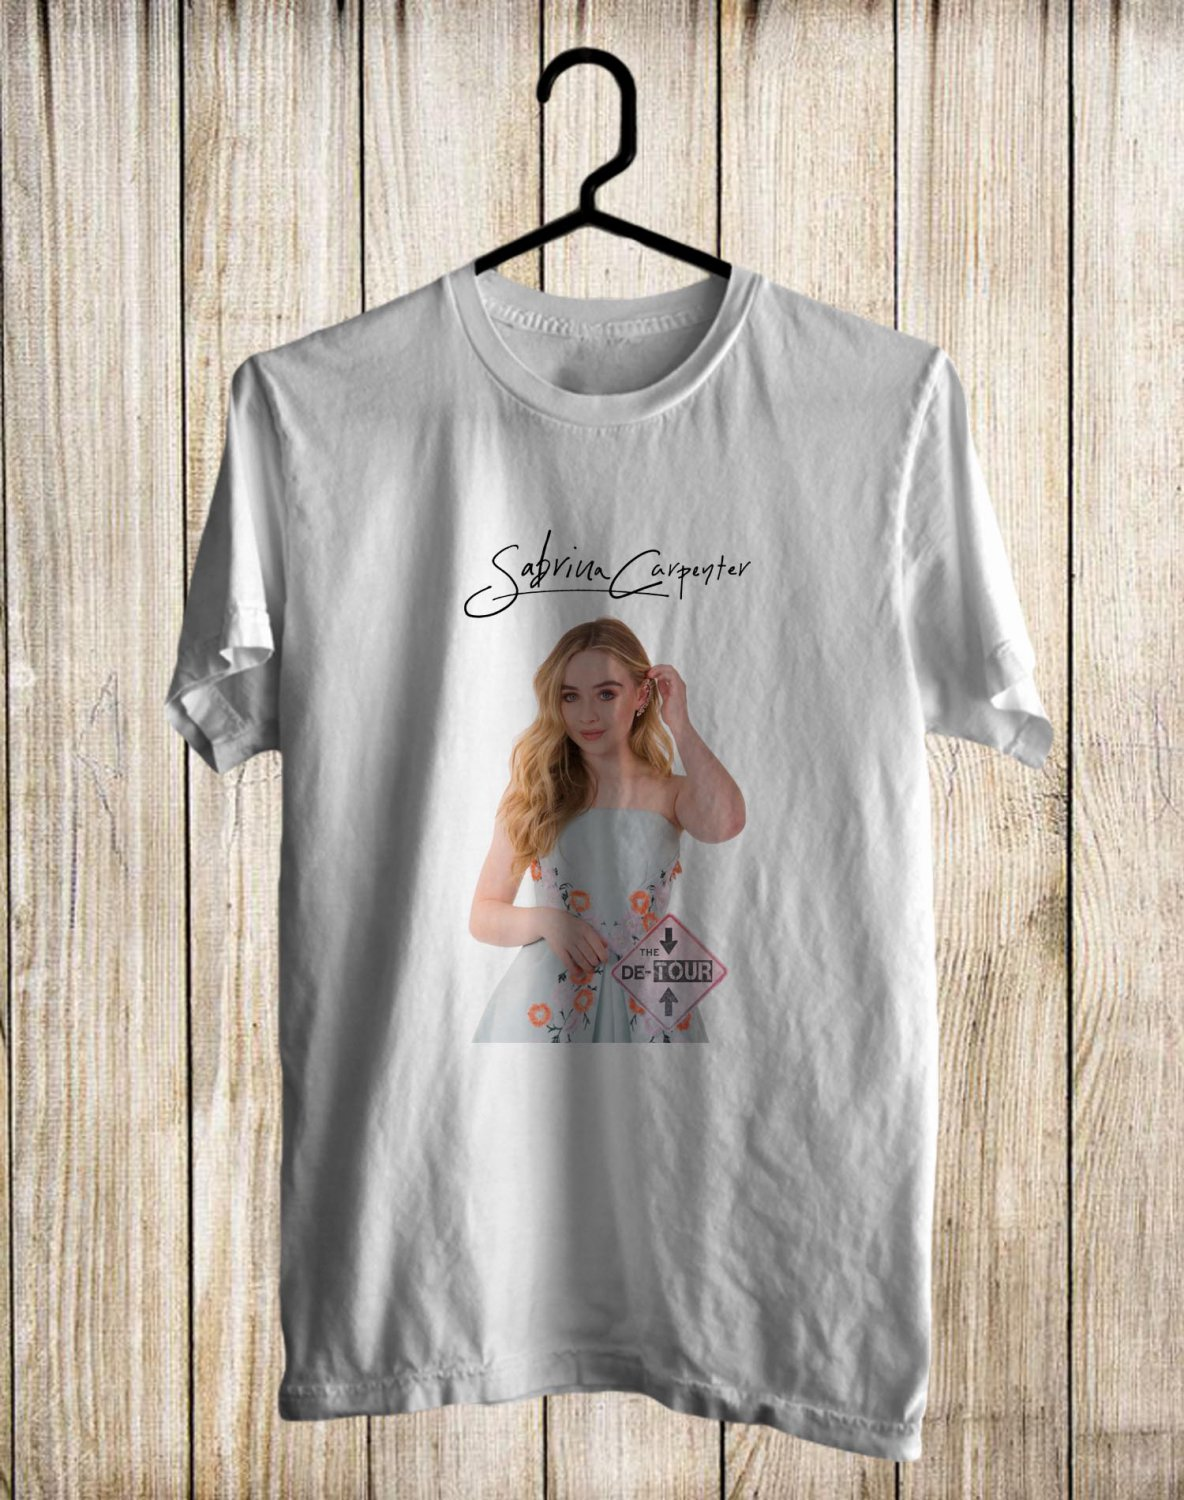 Sabrina Carpenter The De-Tour 2017 White Tee's Front Side by Complexart